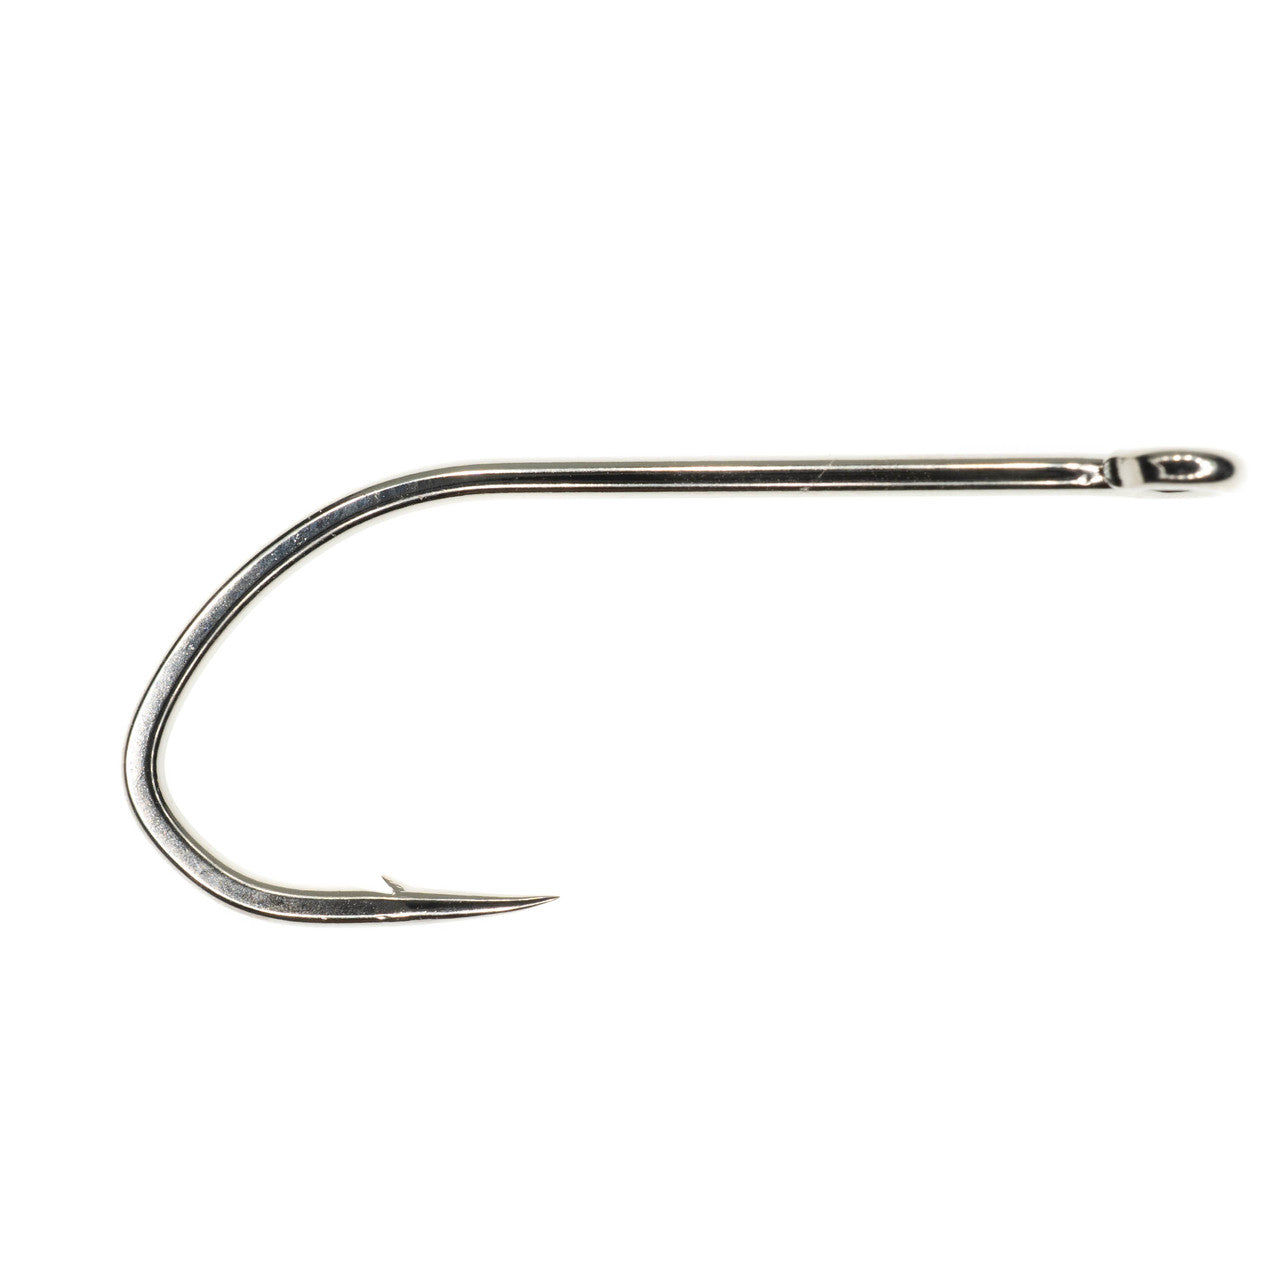 UMPQUA XS410 NI5X ALL-PURPOSE HOOK